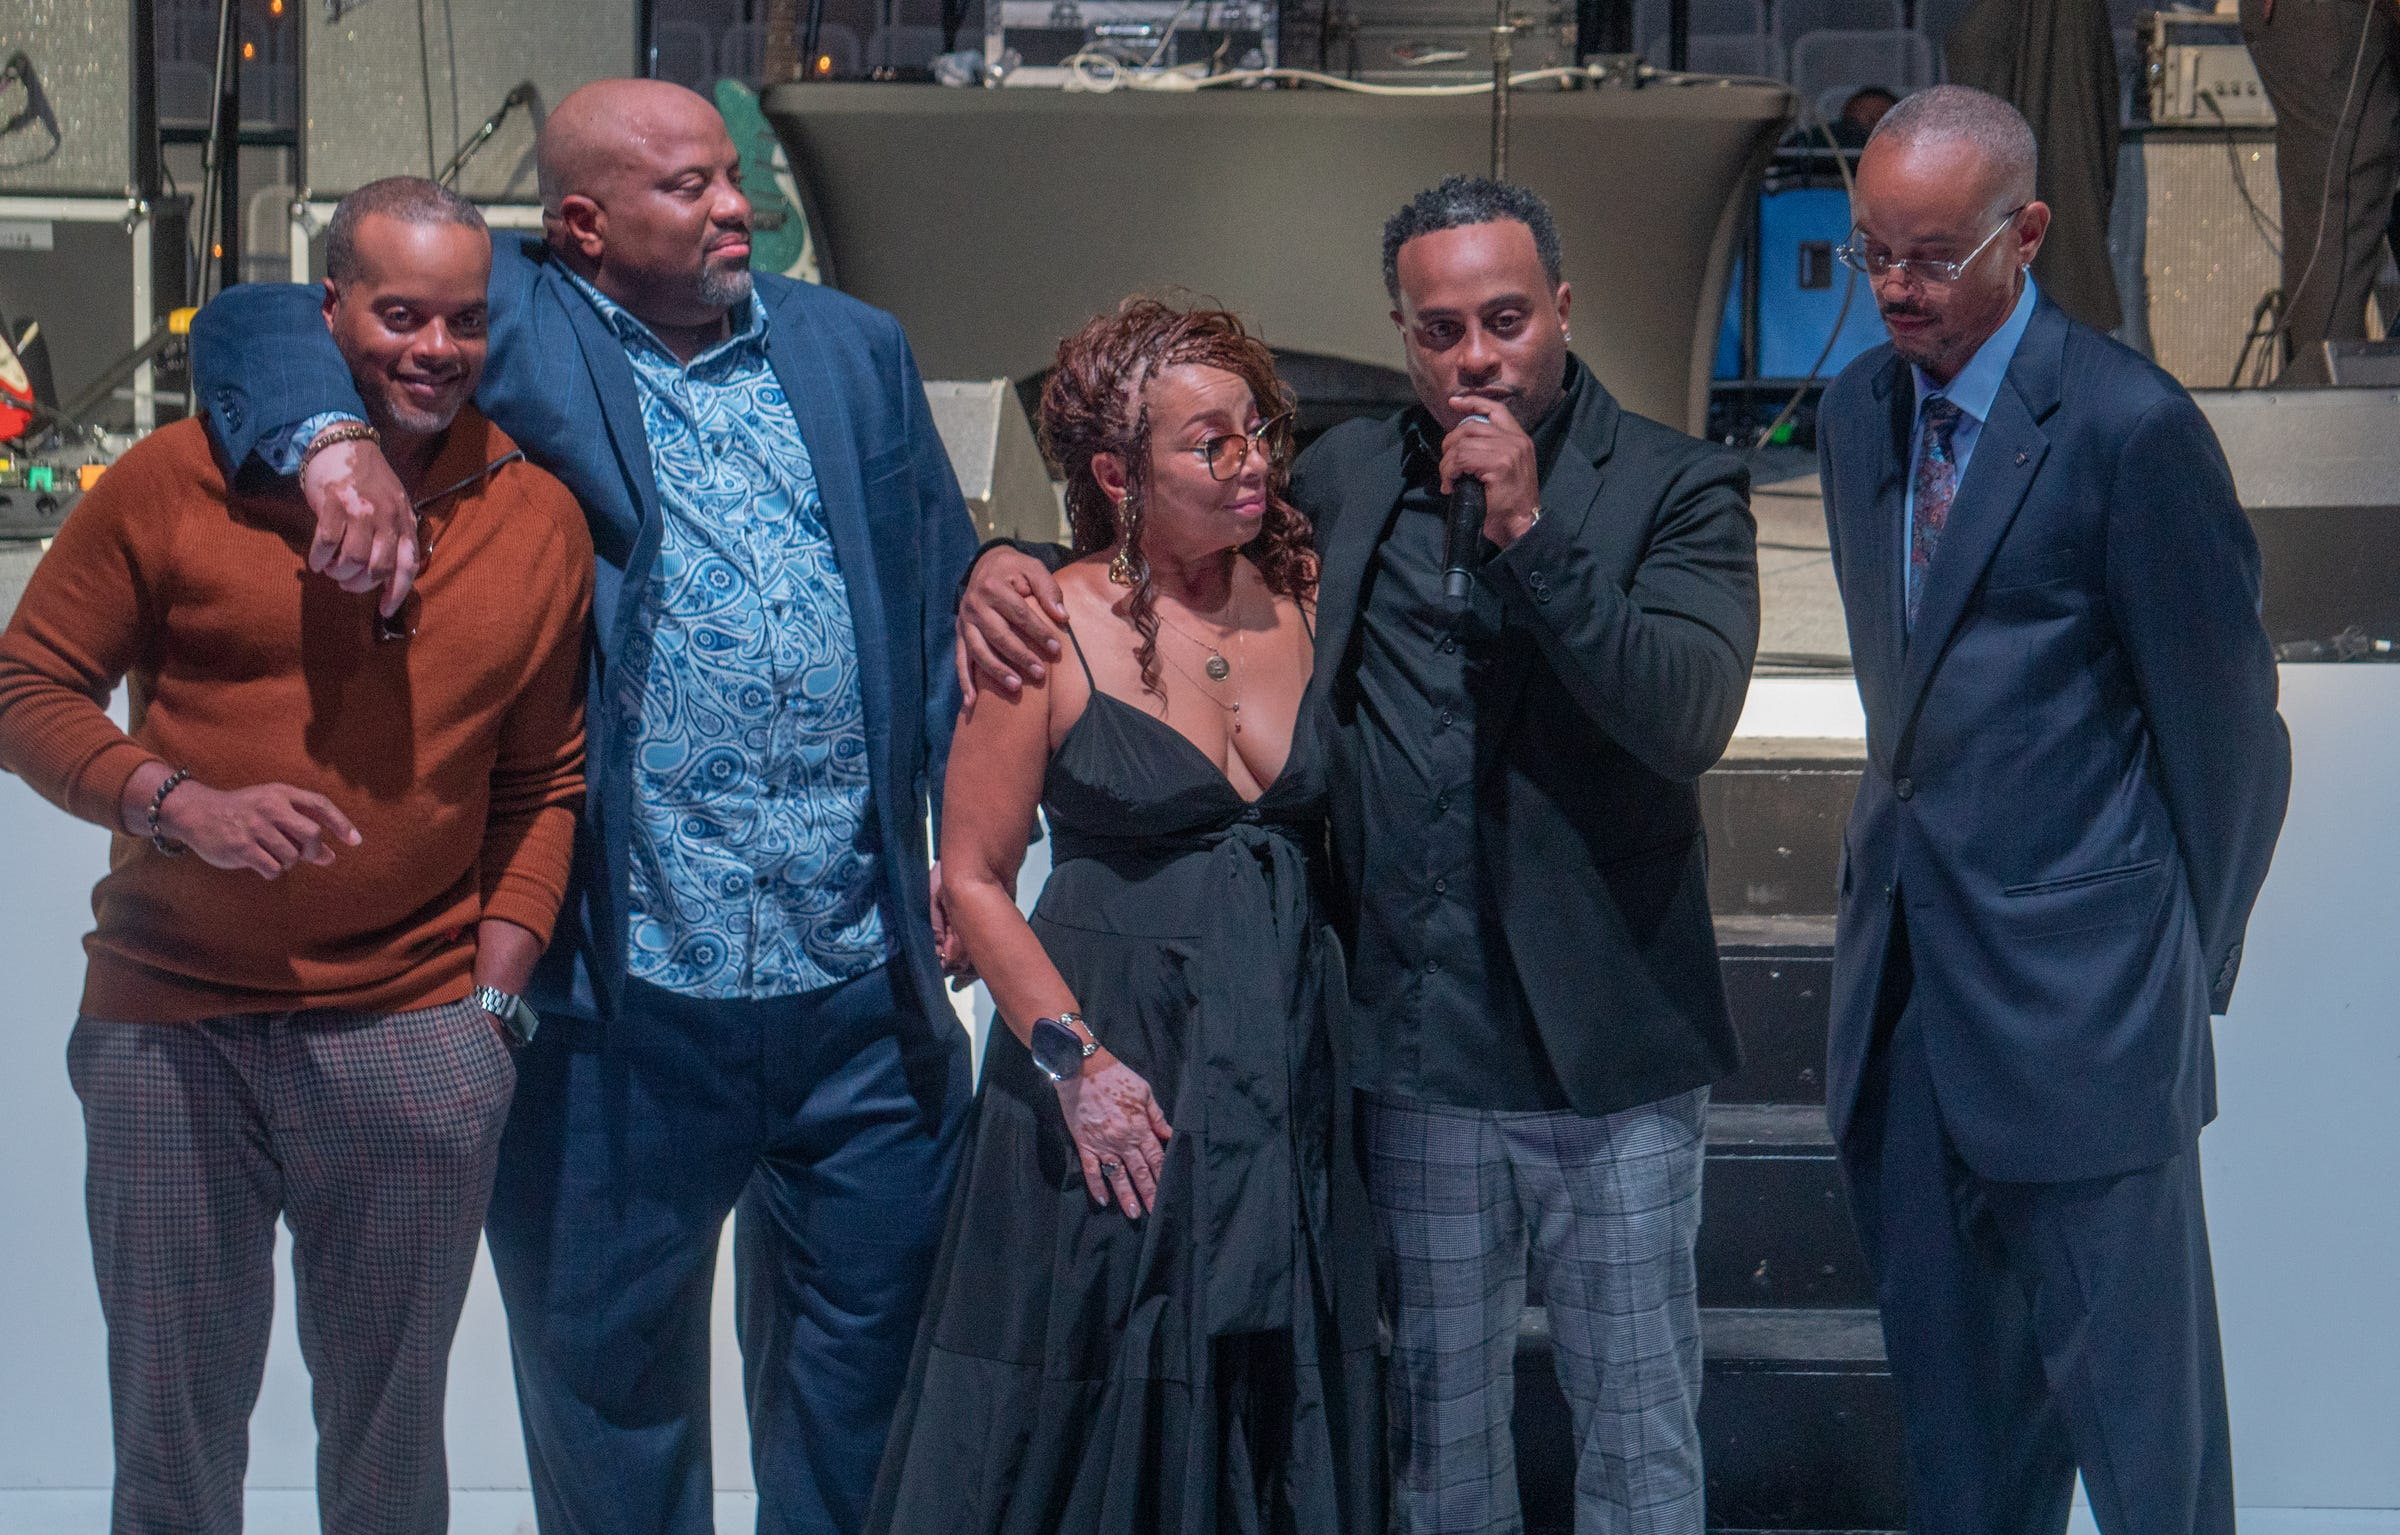 [LEFT to RIGHT] Rashid Mausi, Sulaiman Mausi,  President of The Right Productions Shahida Mausi Dorian Mausi and Malik Mausi addressing those in attendance for the 25 years of business celebration of The Aretha Franklin Amphitheater on September 17, 2021.